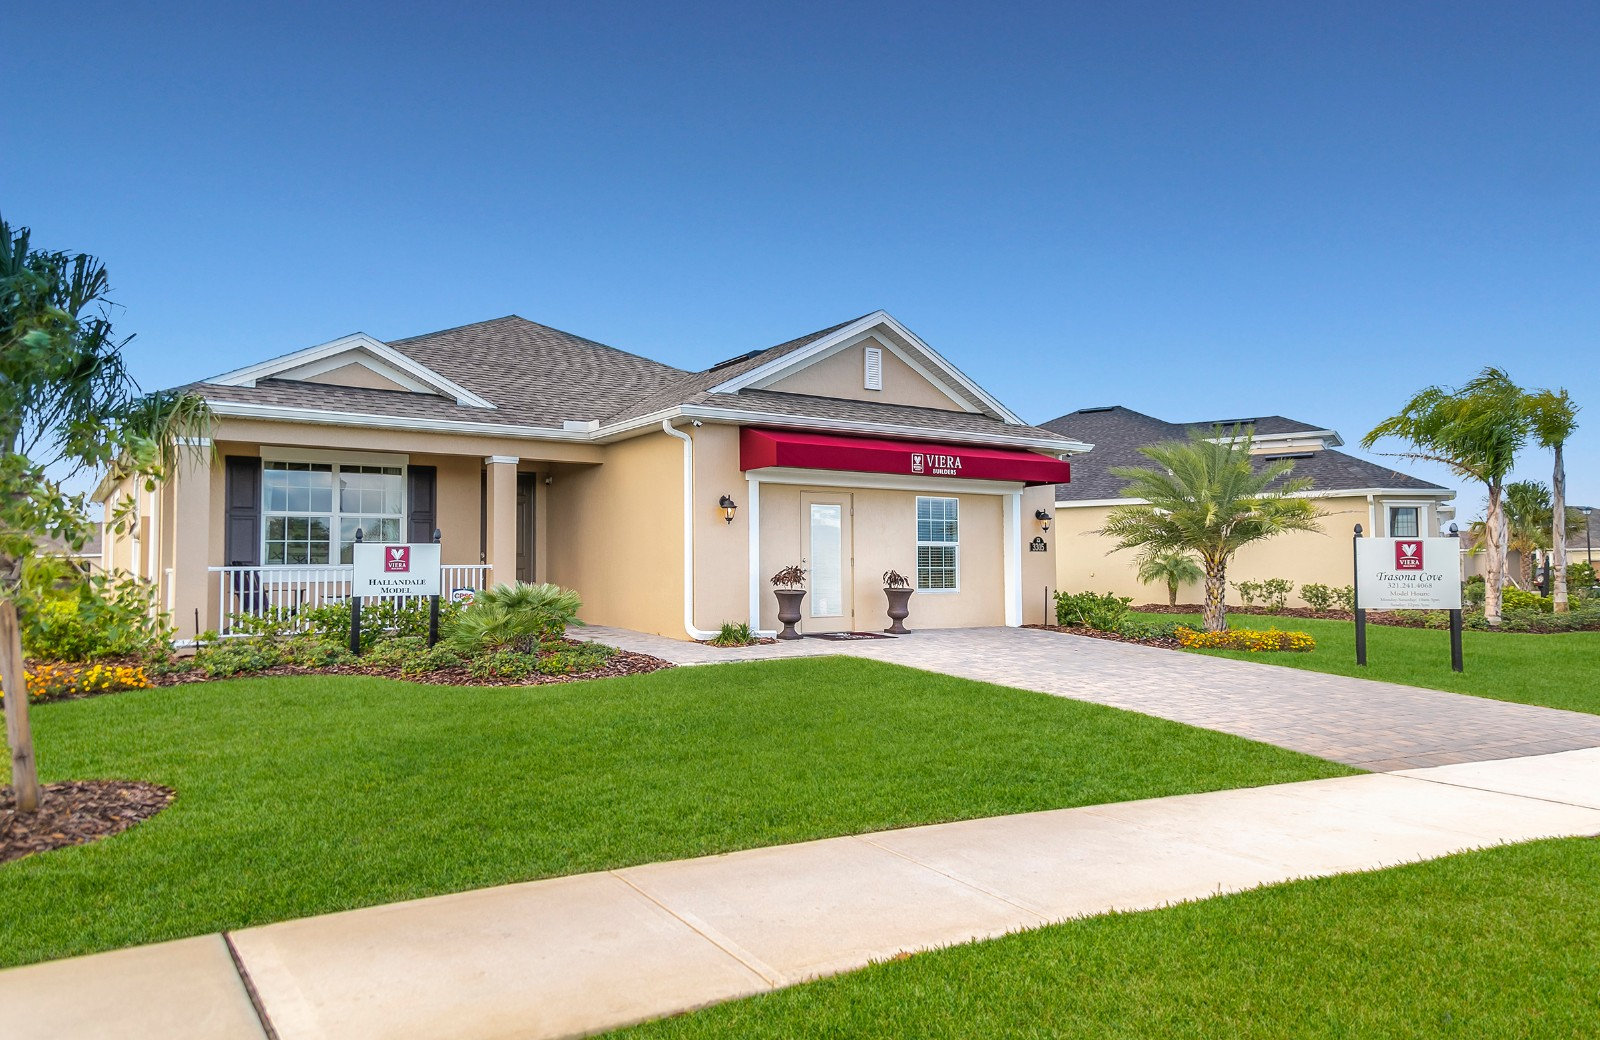 Trasona Cove at Viera Homes